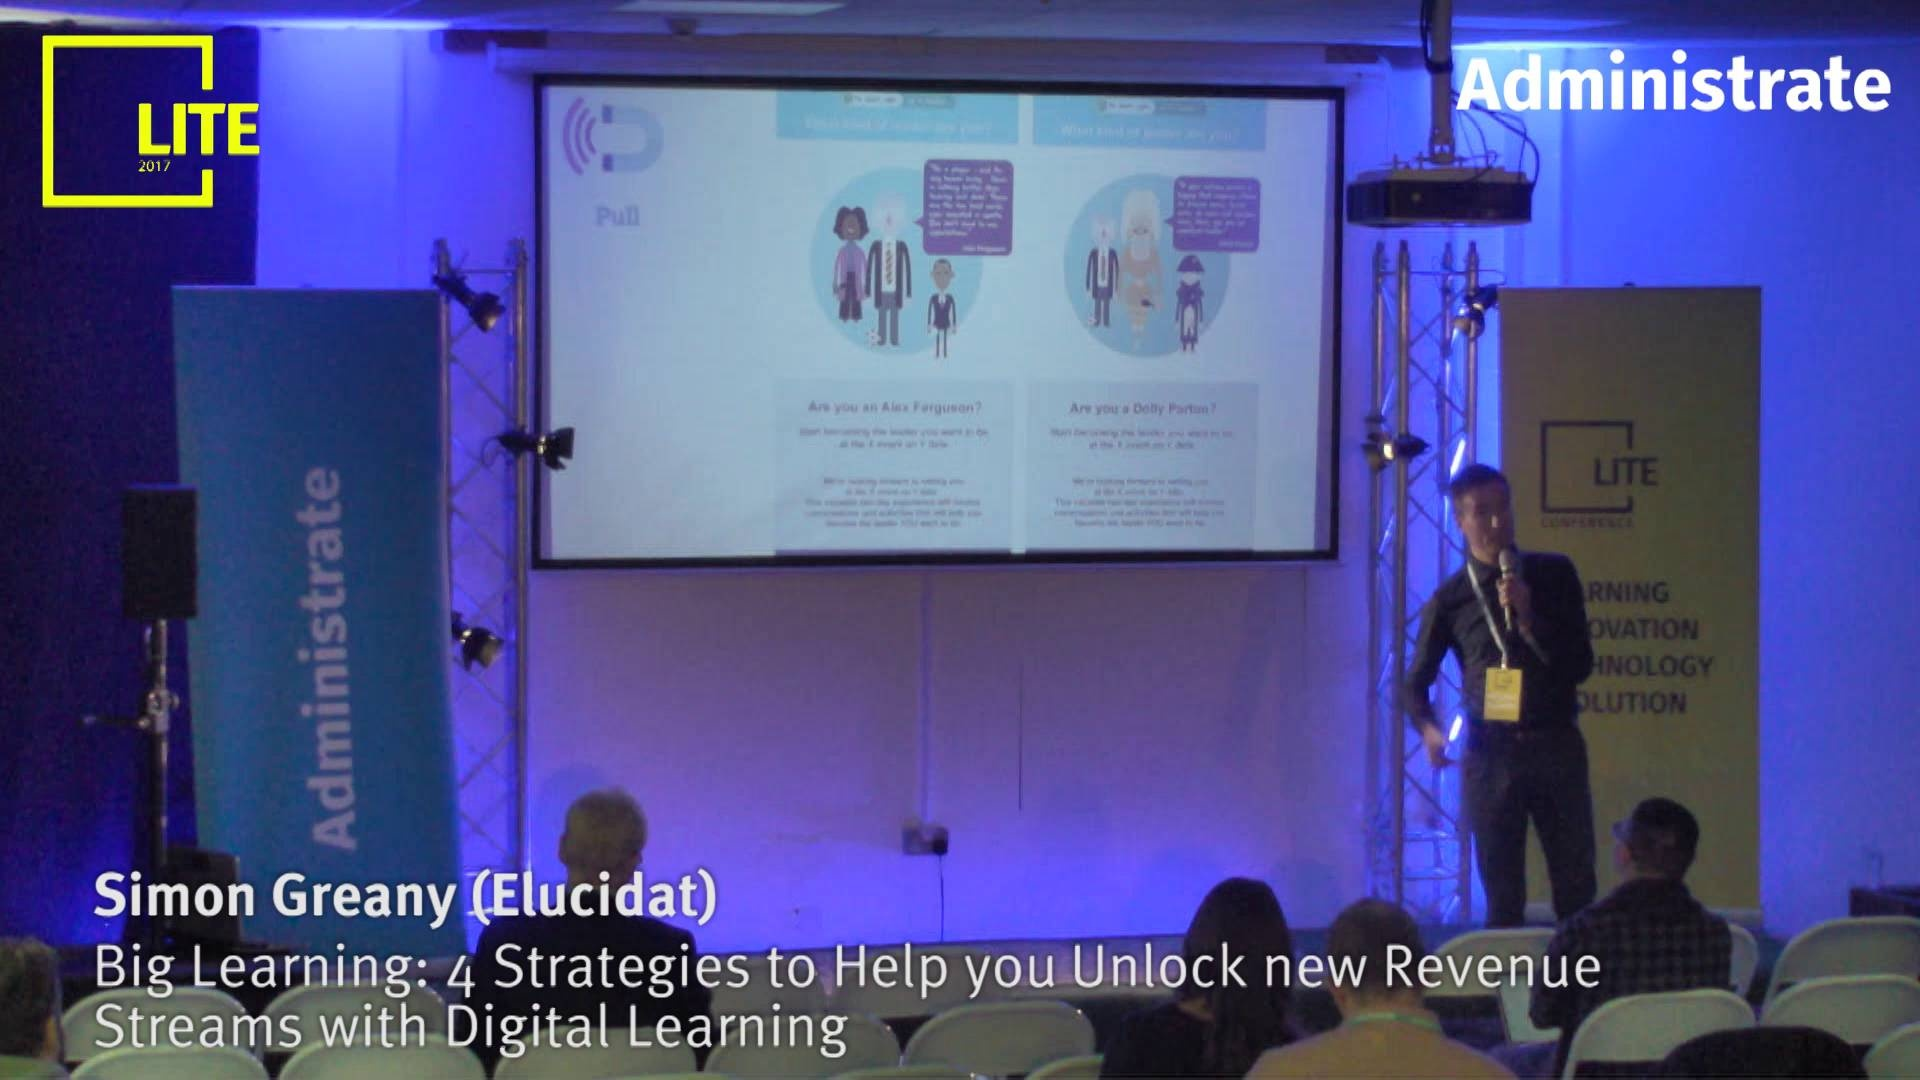 Big Learning: 4 Strategies to Help you Unlock new Revenue Streams with Digital Learning [Simon Greany]